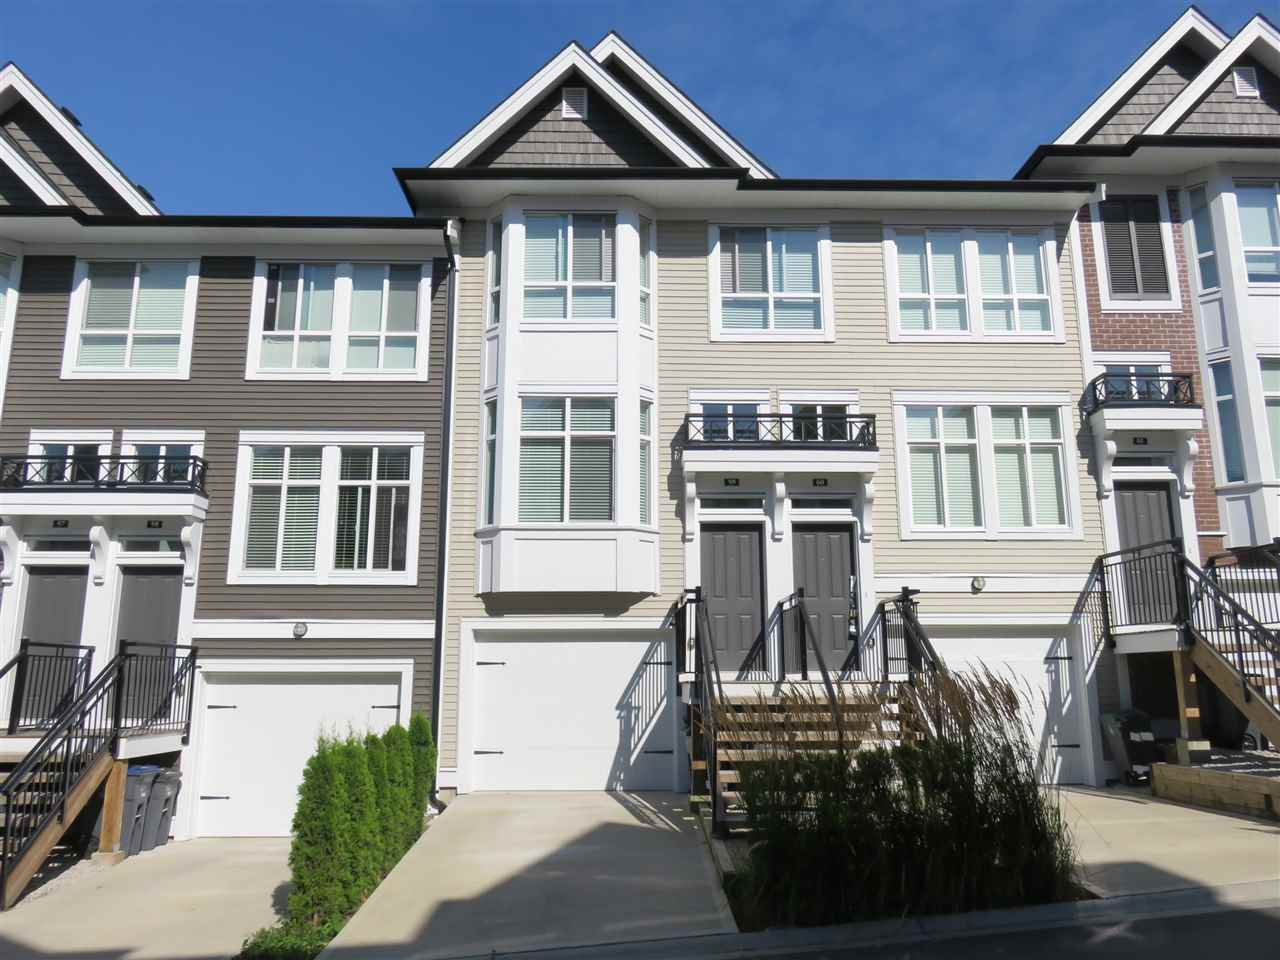 """Main Photo: 59 14433 60 Avenue in Surrey: Sullivan Station Townhouse for sale in """"Brixton"""" : MLS®# R2200859"""